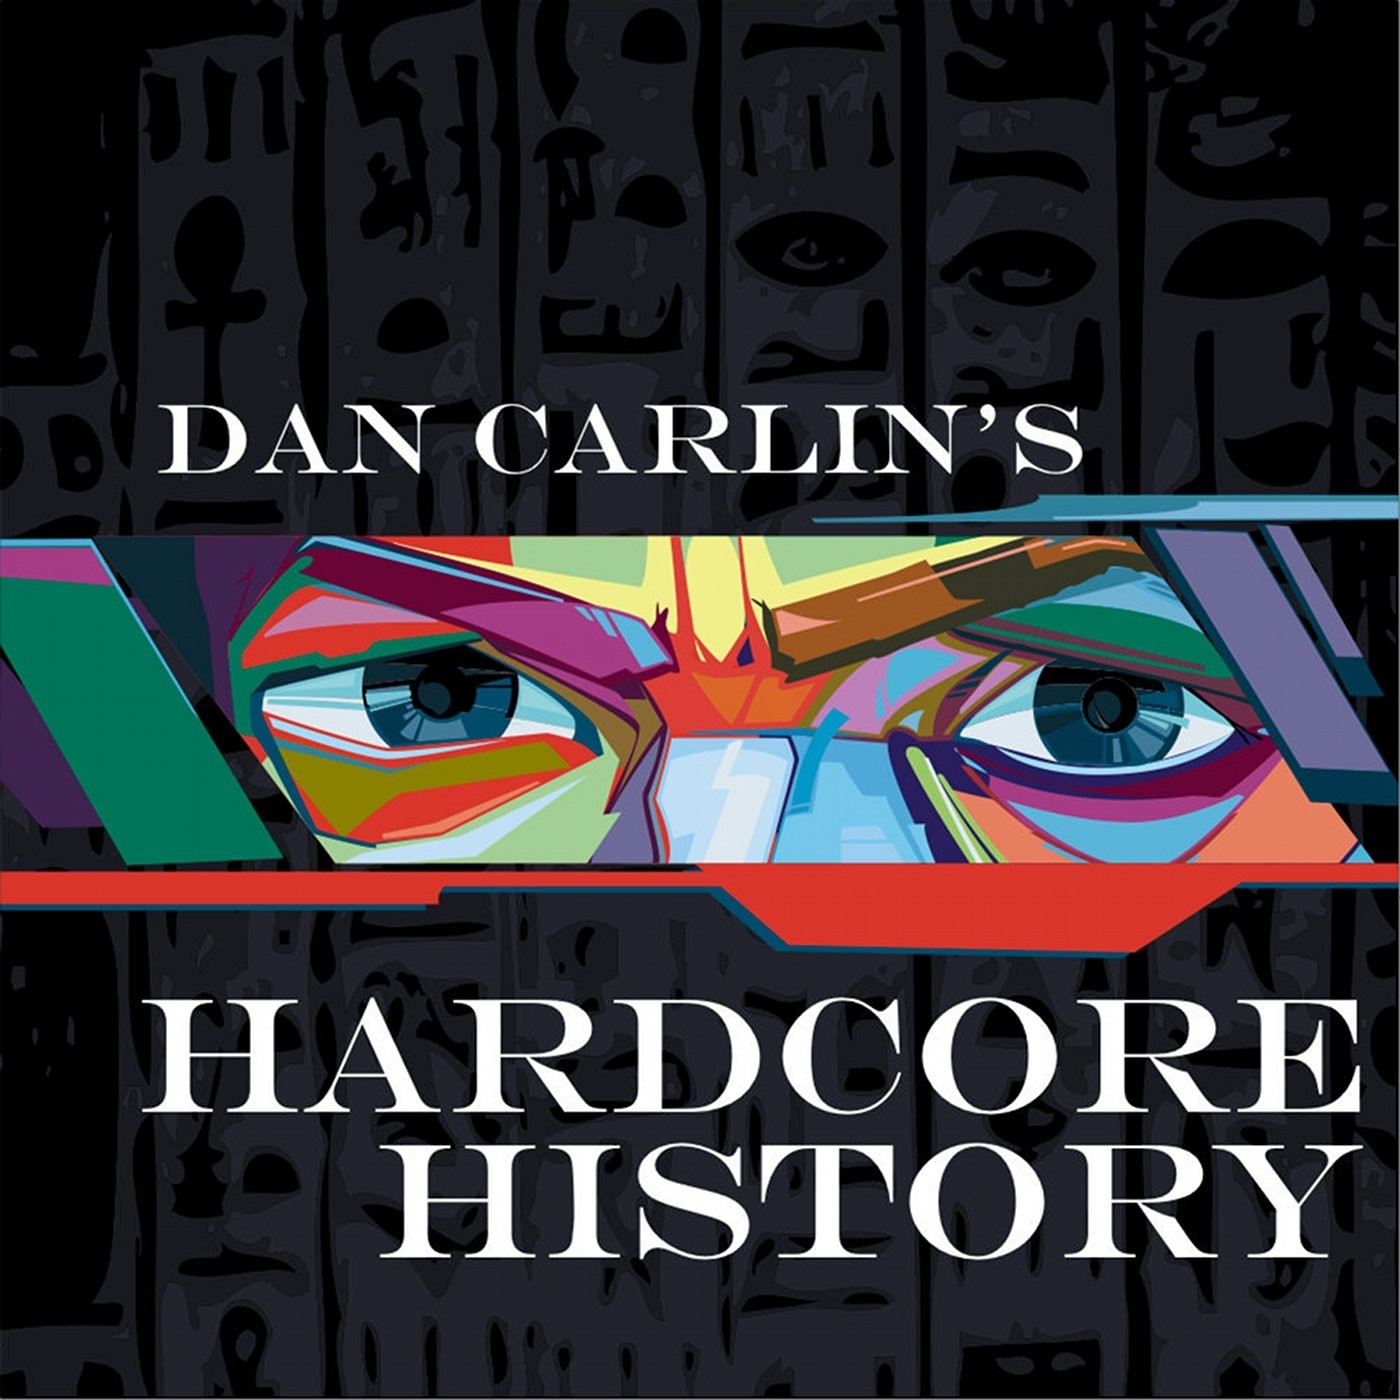 Dan carlins hardcore history listen free on castbox show 54 blueprint for armageddon v malvernweather Gallery